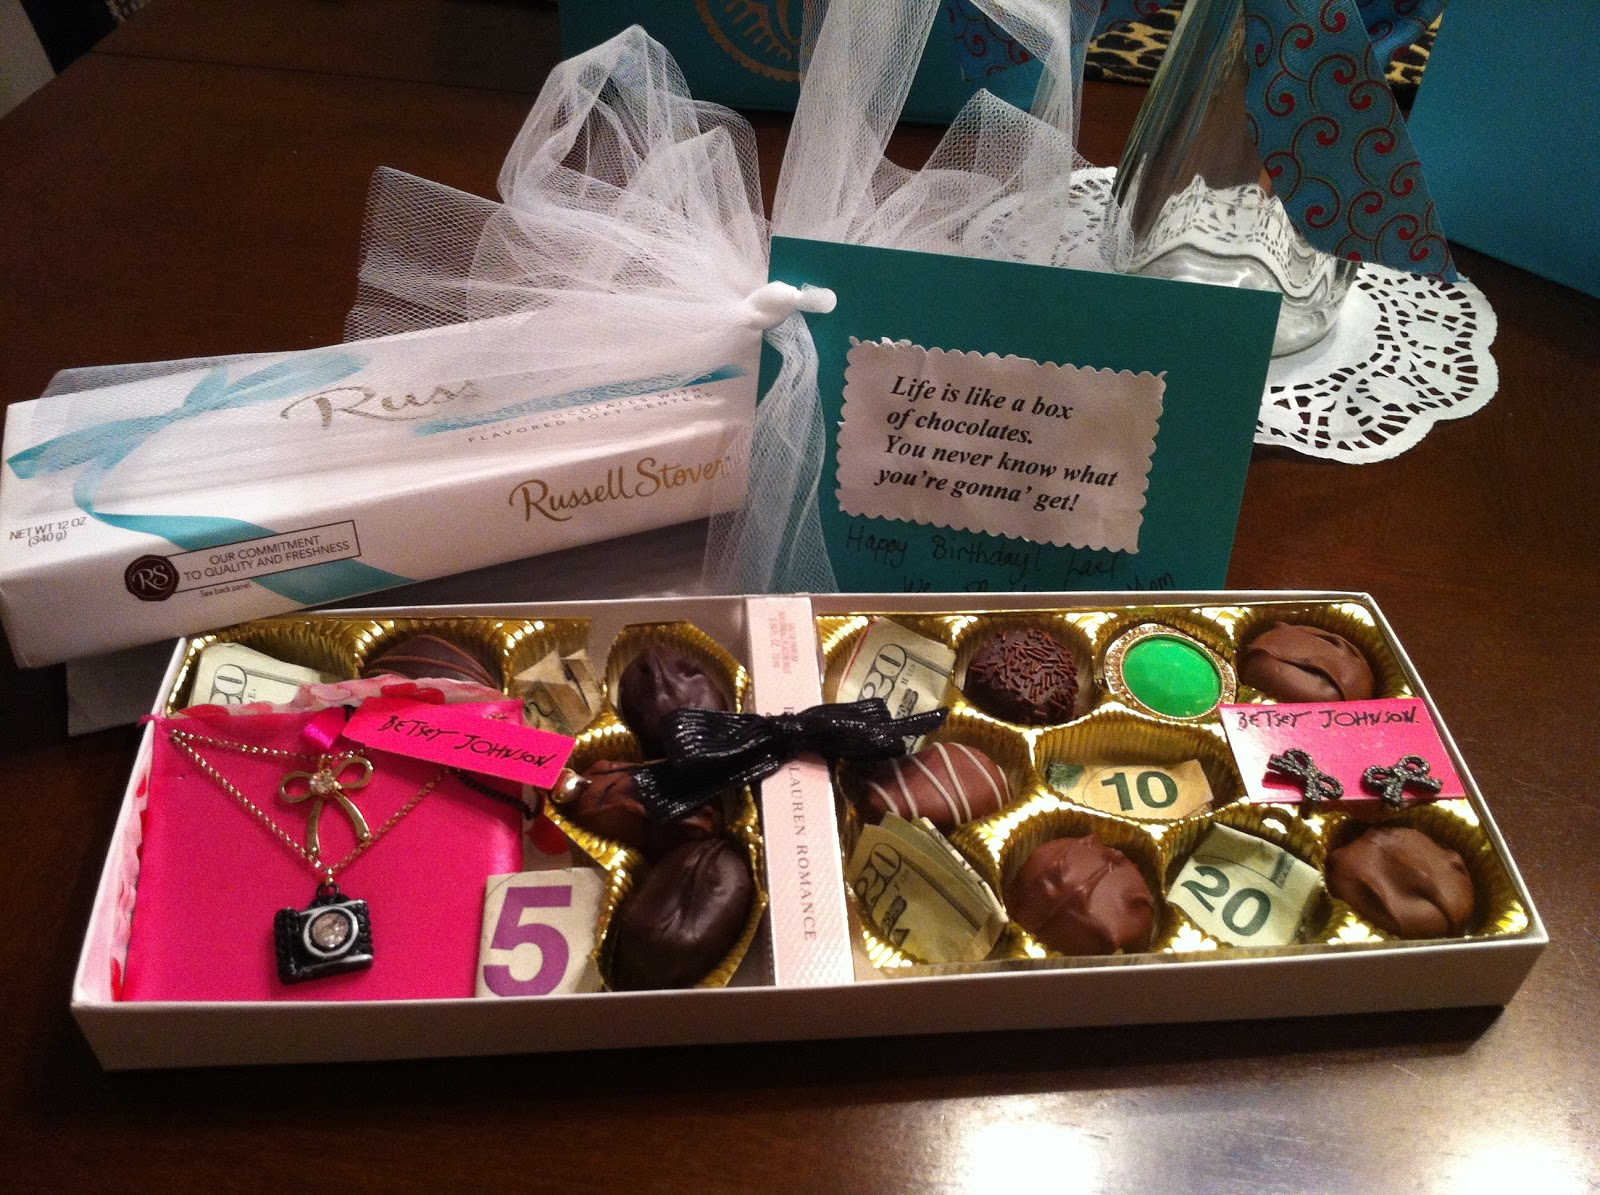 21st birthday gifts for girls ideas for christmas